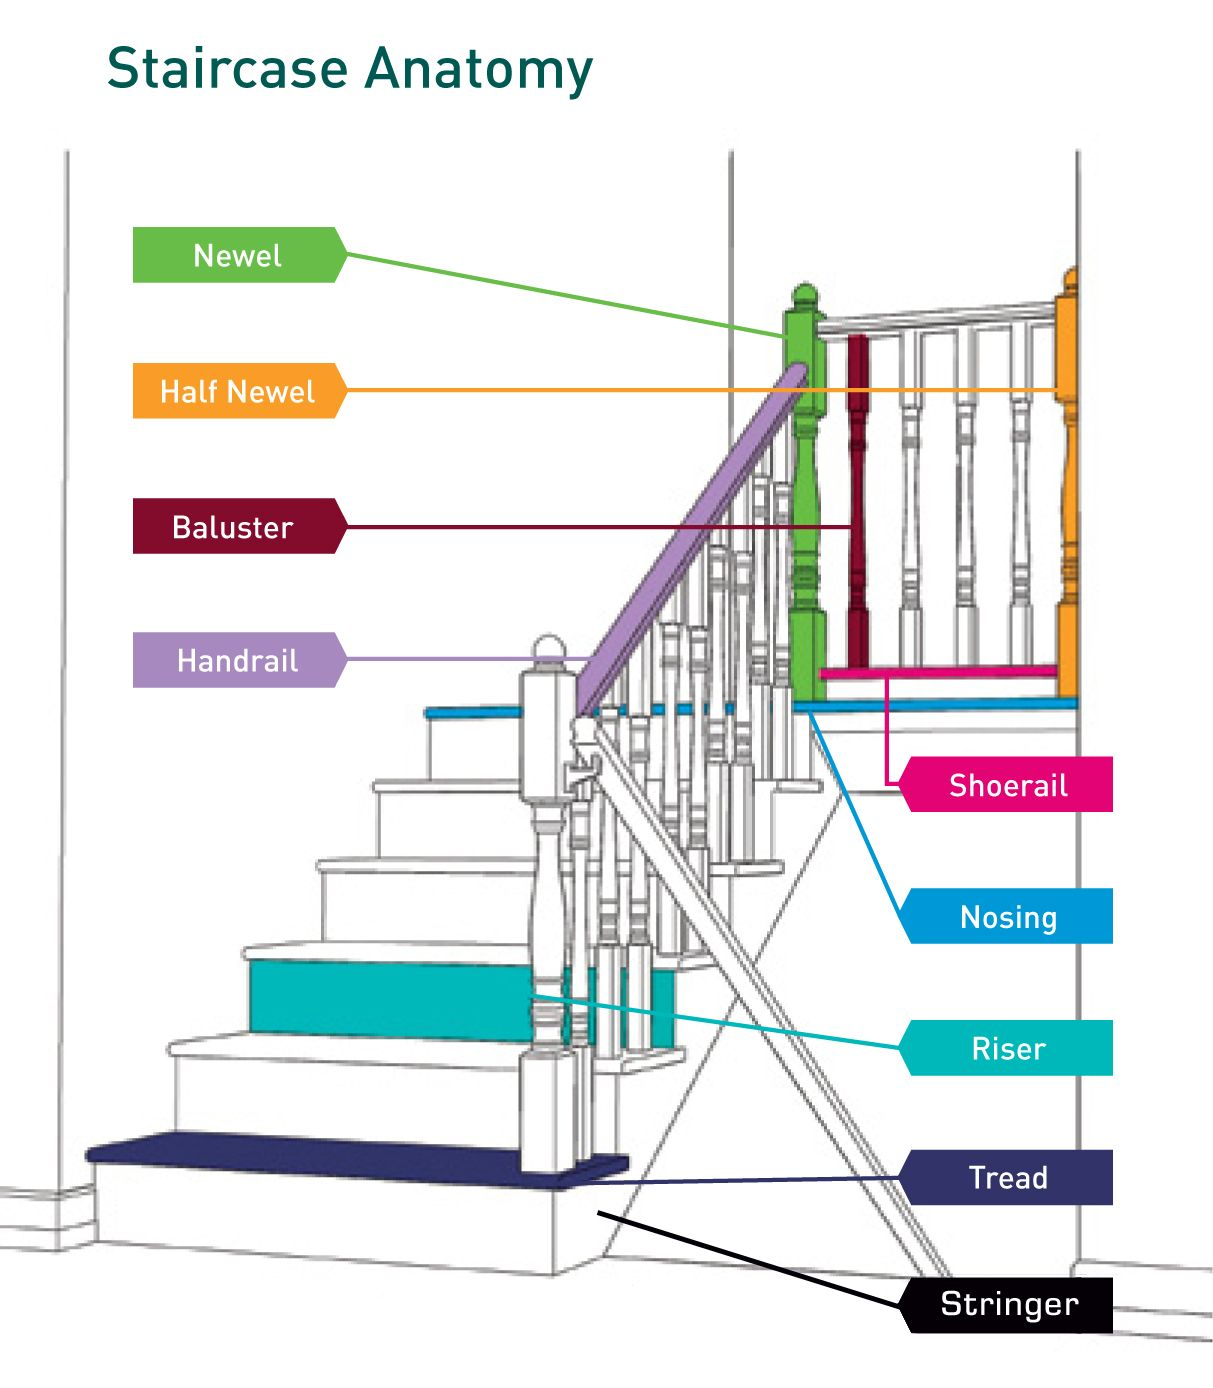 stairs open riser closed treads landings | step 1 - select ... a diagram of an atom of chromium #10